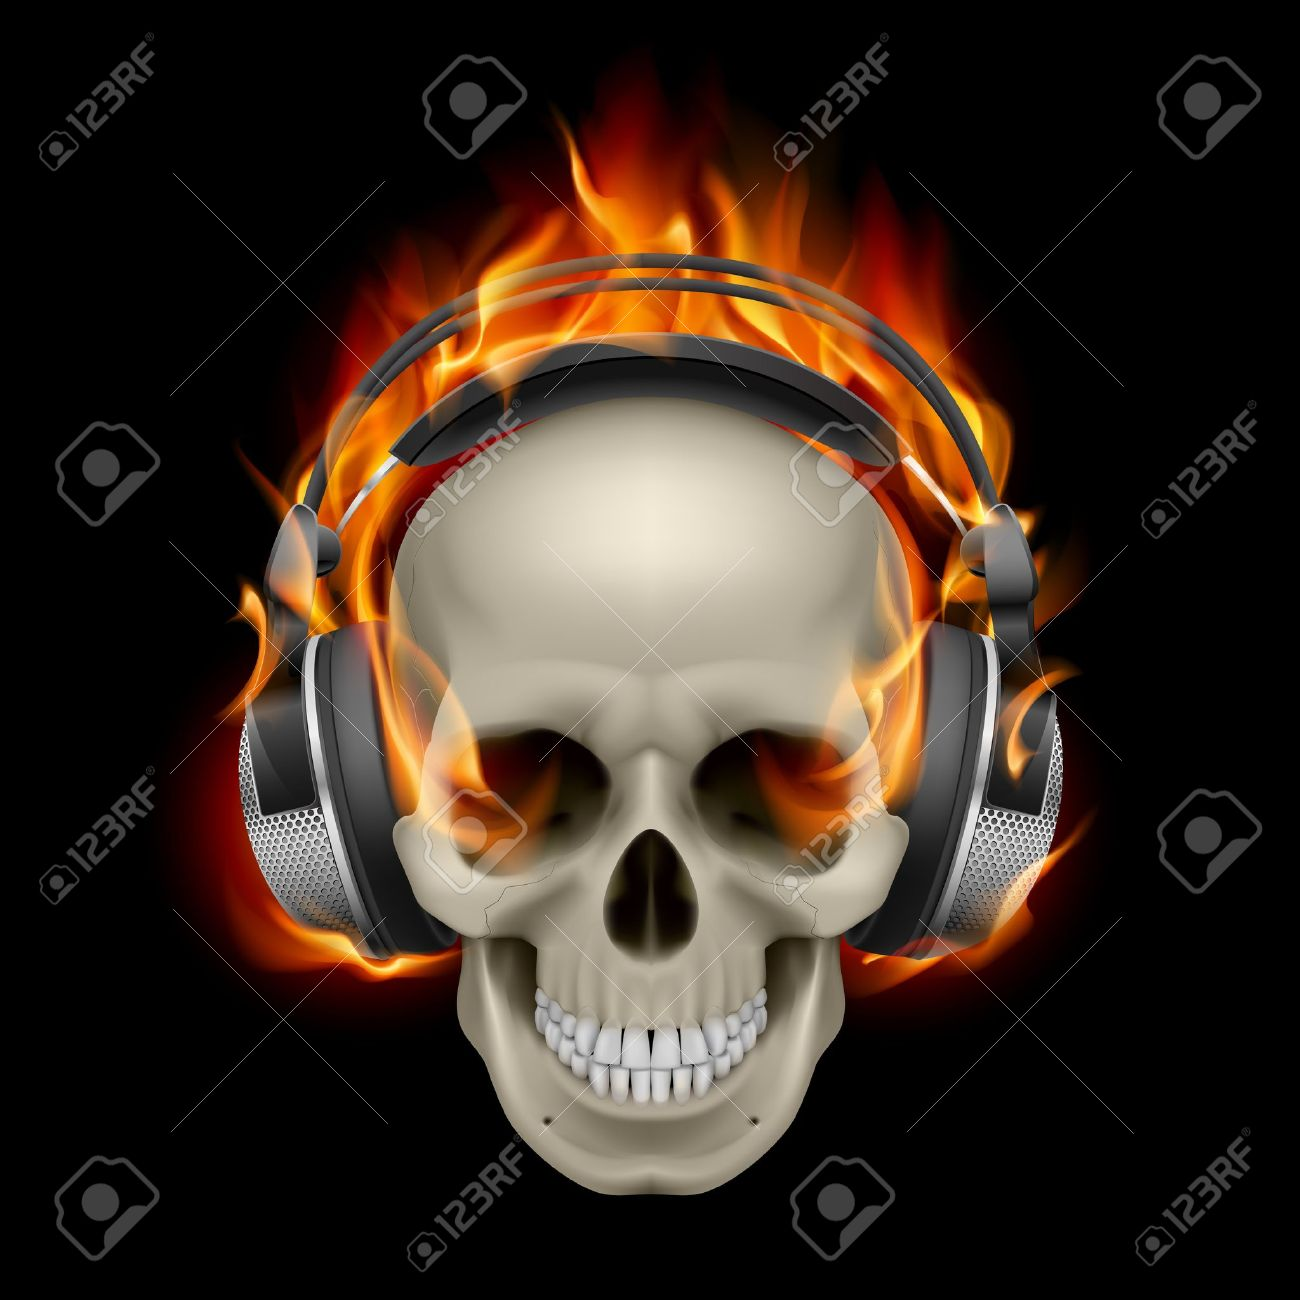 Illustration of wearing headphones. Cool flaming skull clipart